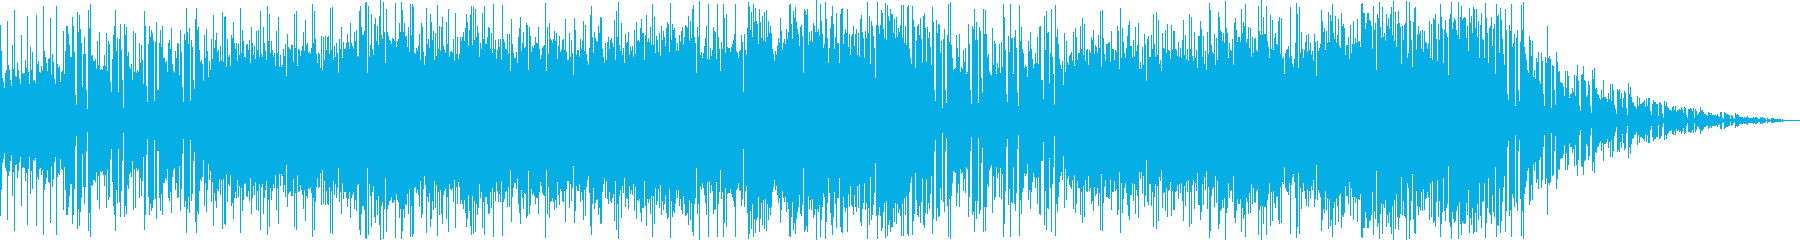 Pop and friendly information songs's reproduced waveform